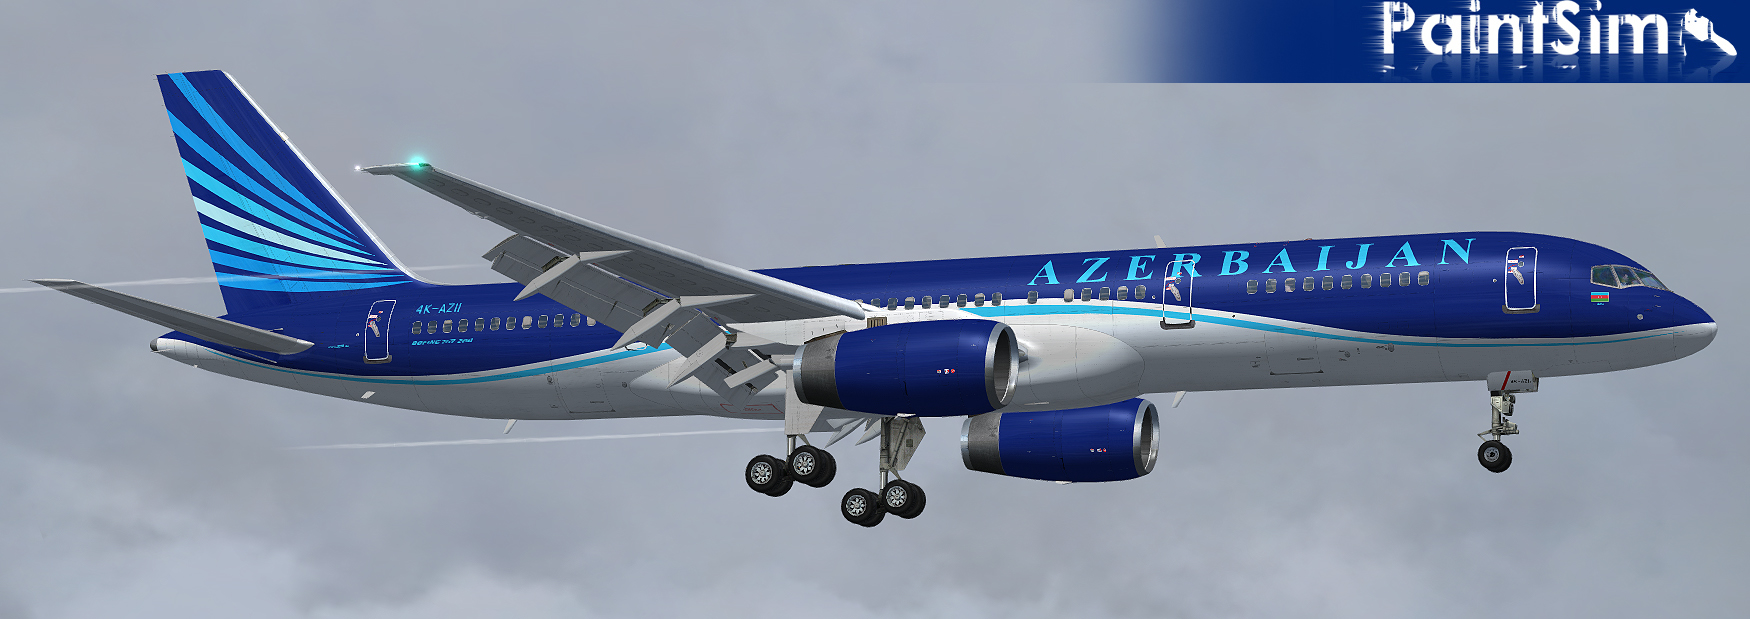 PAINTSIM - UHD TEXTURE PACK 1 FOR CAPTAIN SIM BOEING 757-200 FSX